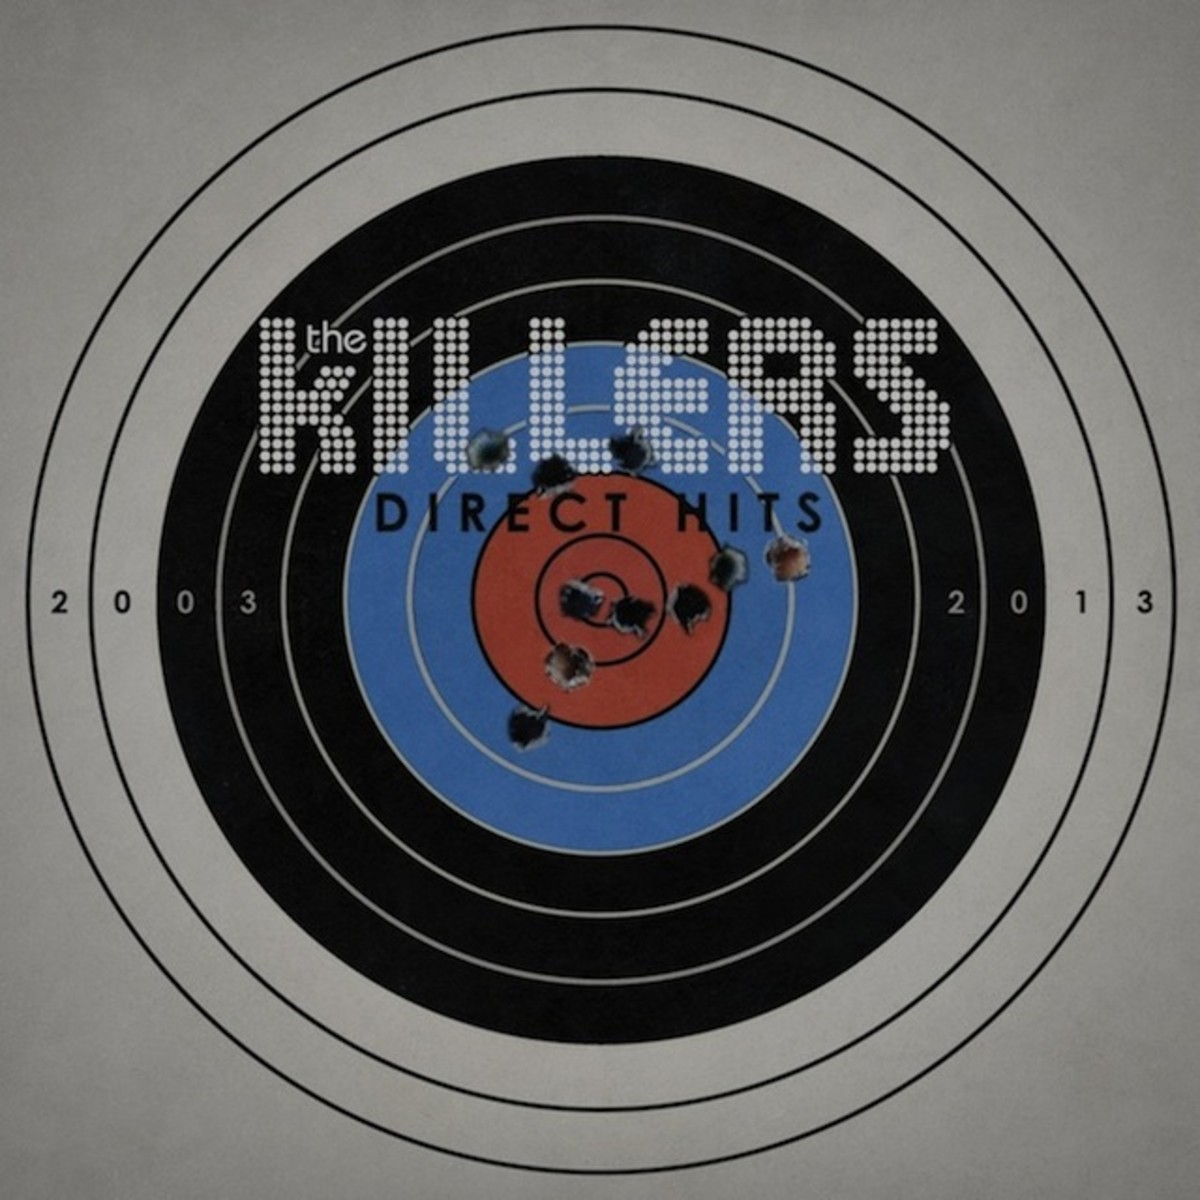 The Killers Direct Hits Vinyl Musiczone Vinyl